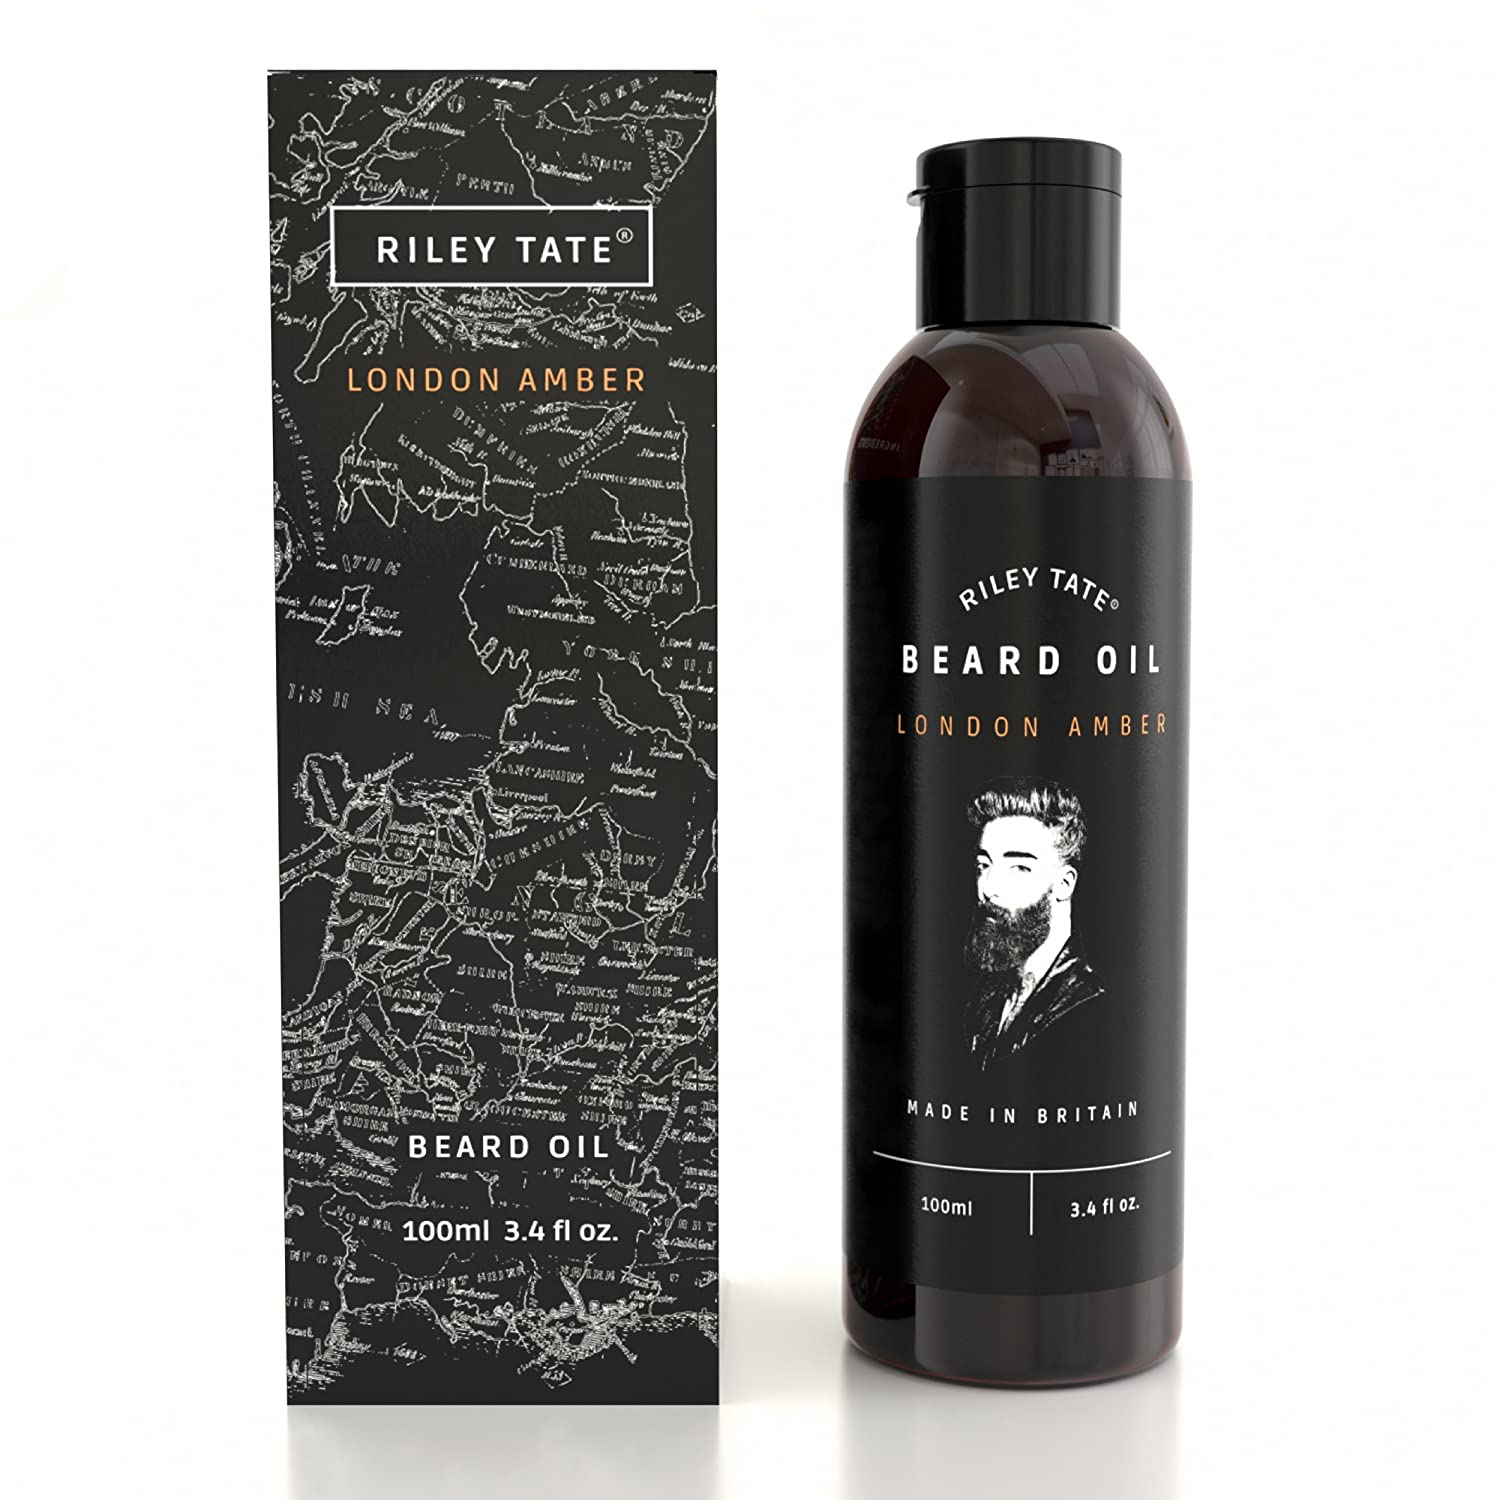 Beard Oil. Extra Large 100ml Bottle. Gives Shine Without Grease, Made Exclusively In The UK - Formulated With Premium Natural Ingredients Riley Tate